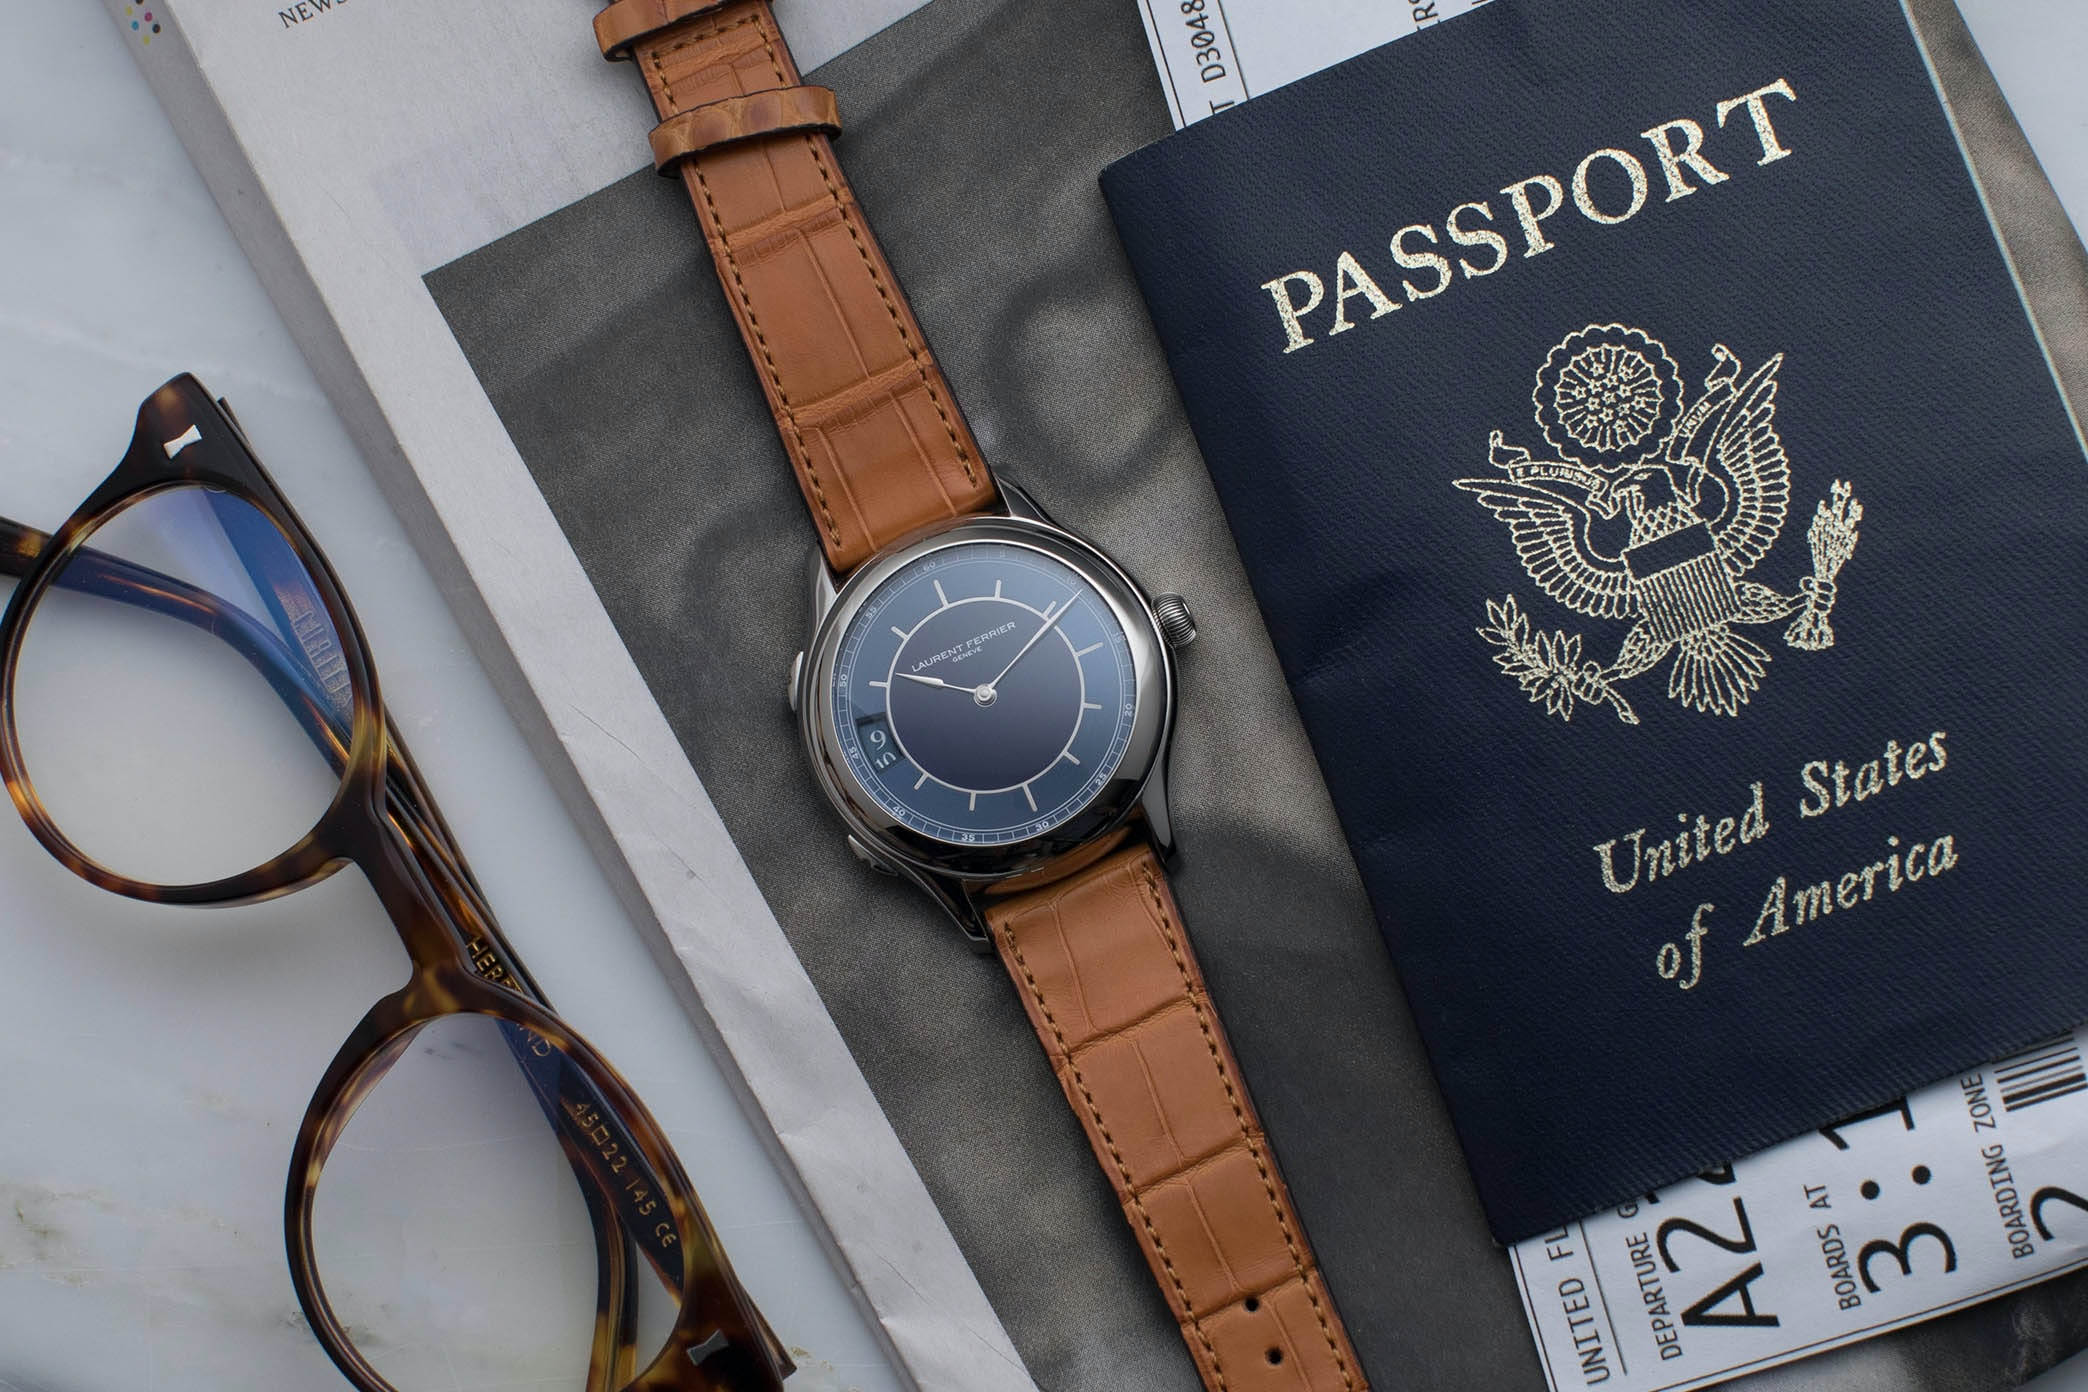 In The Shop: Introducing The Laurent Ferrier Traveller Limited Edition For HODINKEE In The Shop: Introducing The Laurent Ferrier Traveller Limited Edition For HODINKEE hodinkee 045